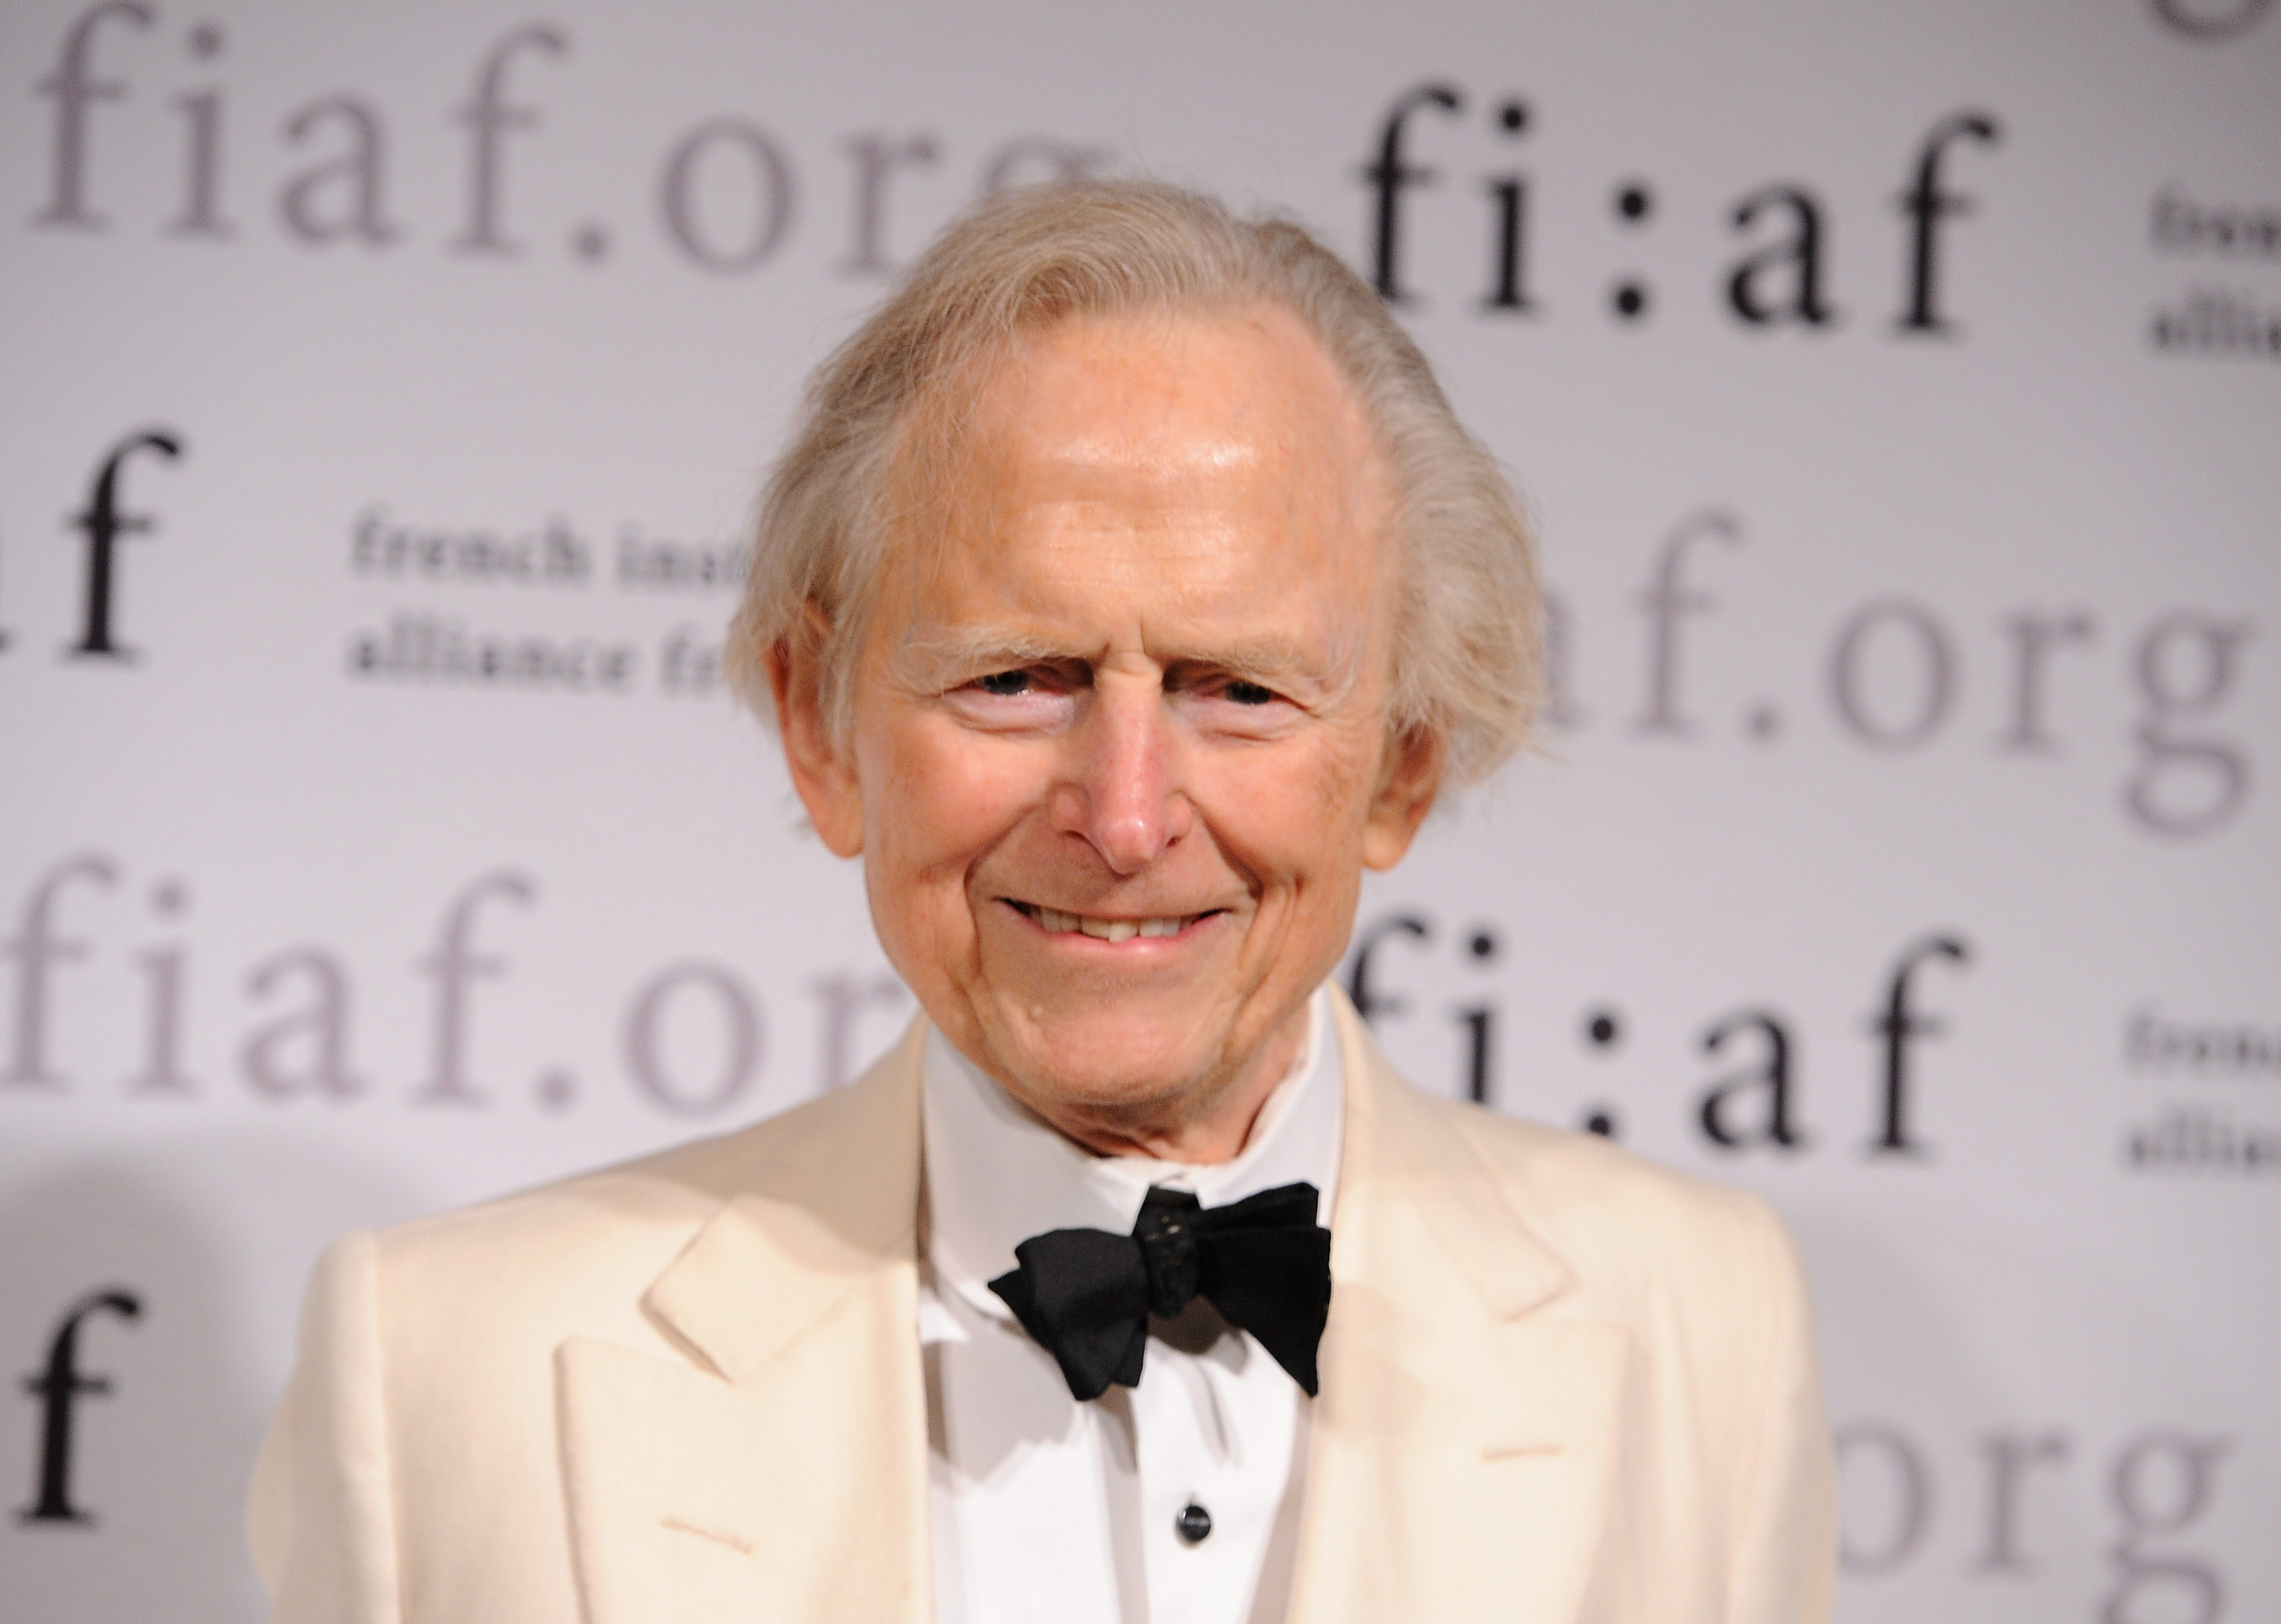 Author Tom Wolfe attends the 2012 Trophee Des Arts Gala at The Plaza Hotel on November 30, 2012 in New York City. (Photo by Fernando Leon/Getty Images)